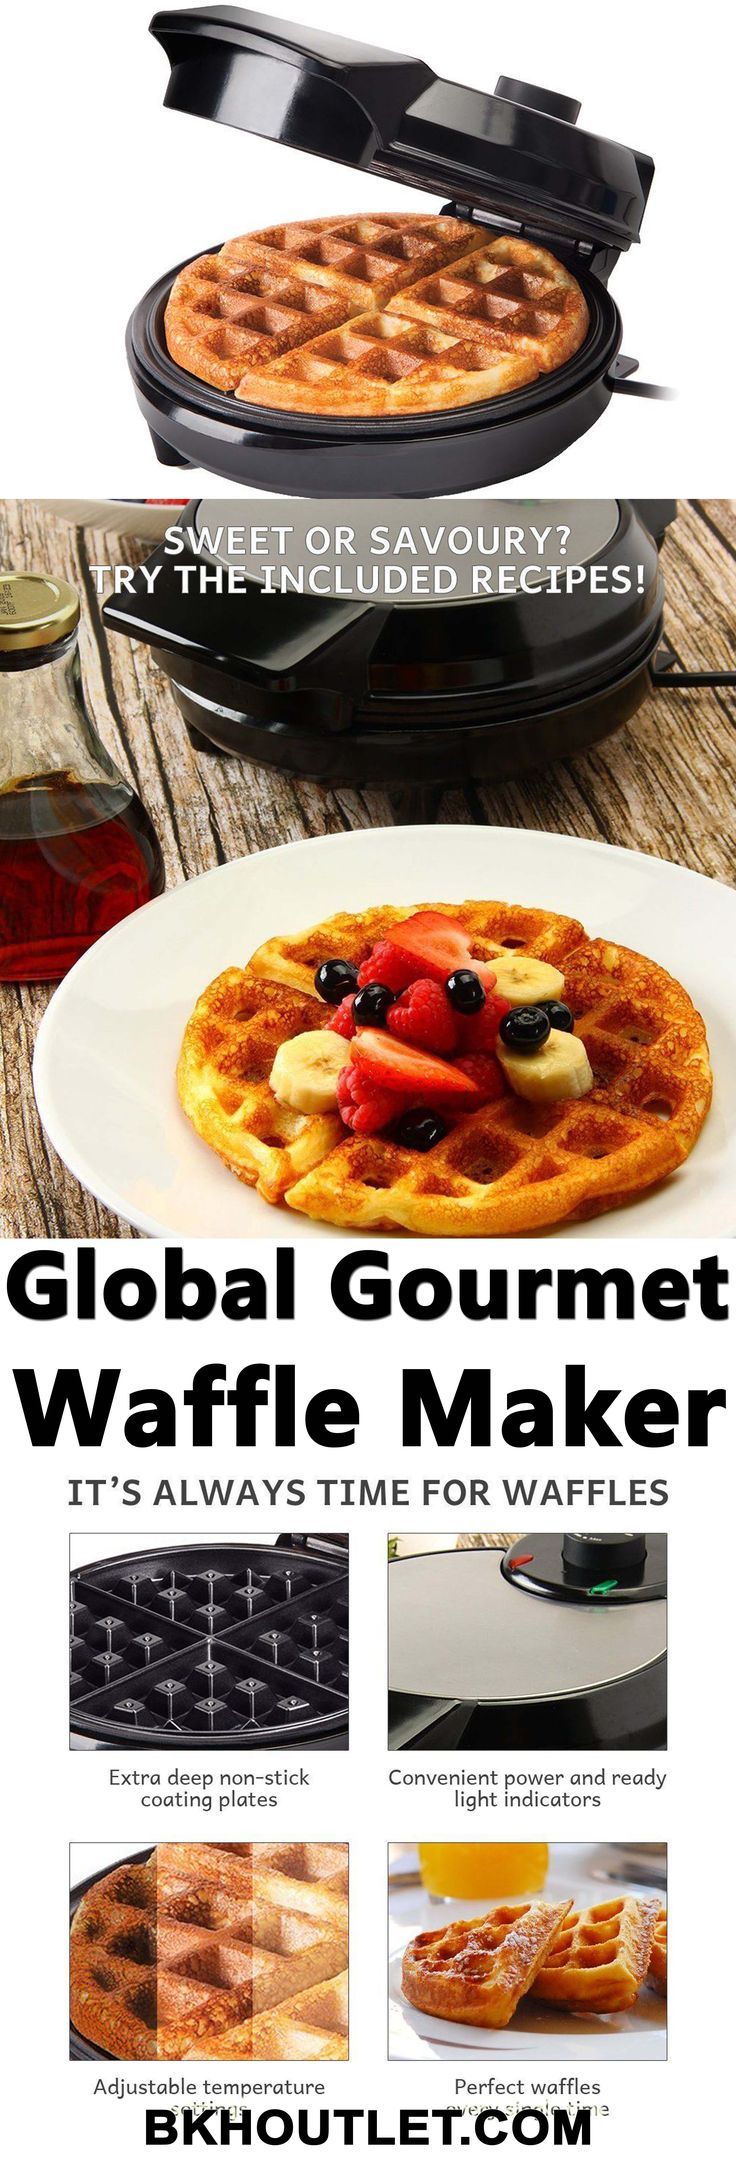 TRADITIONAL AMERICAN WAFFLES BY GLOBAL GOURMET Everyone likes waffles. Especially, when it comes to American waffles. │kitchen appliances │blender │coffee maker │hot plates │kettles │mixers │slow cookers │steamers │toasters │kitchen tools │pressure cooker │kitchen appliances │kitchen tools #kitchenappliances #blender #coffeemaker #hotplates #kettles #mixers #slowcookers #steamers #toasters #kitchentools #pressurecooker #kitchenappliances #kitchentools